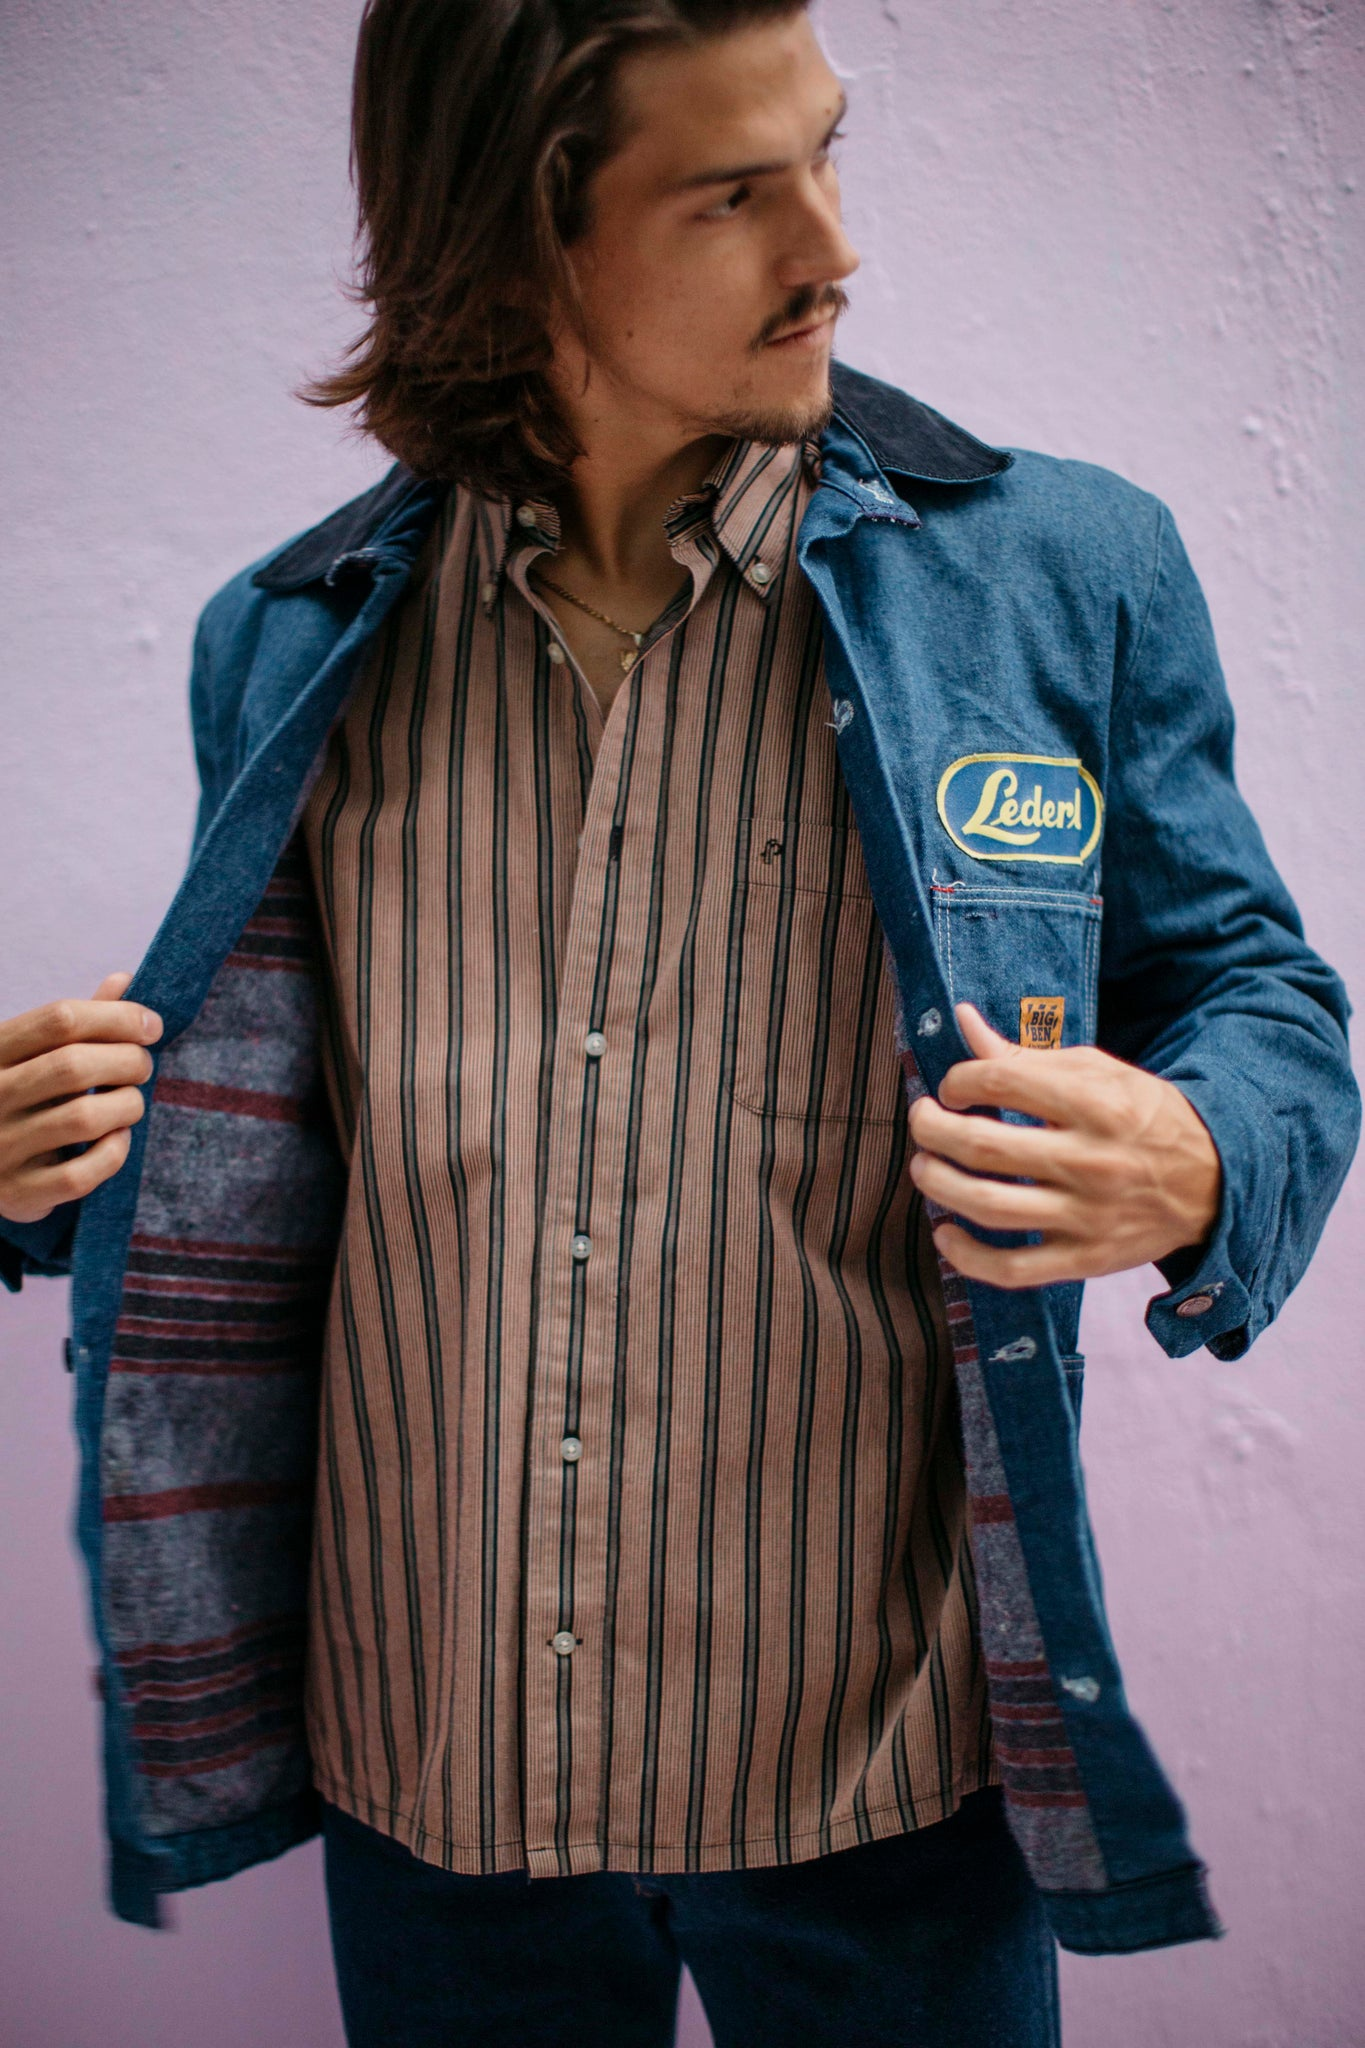 1980's/ 70's Big Ben denim work jacket